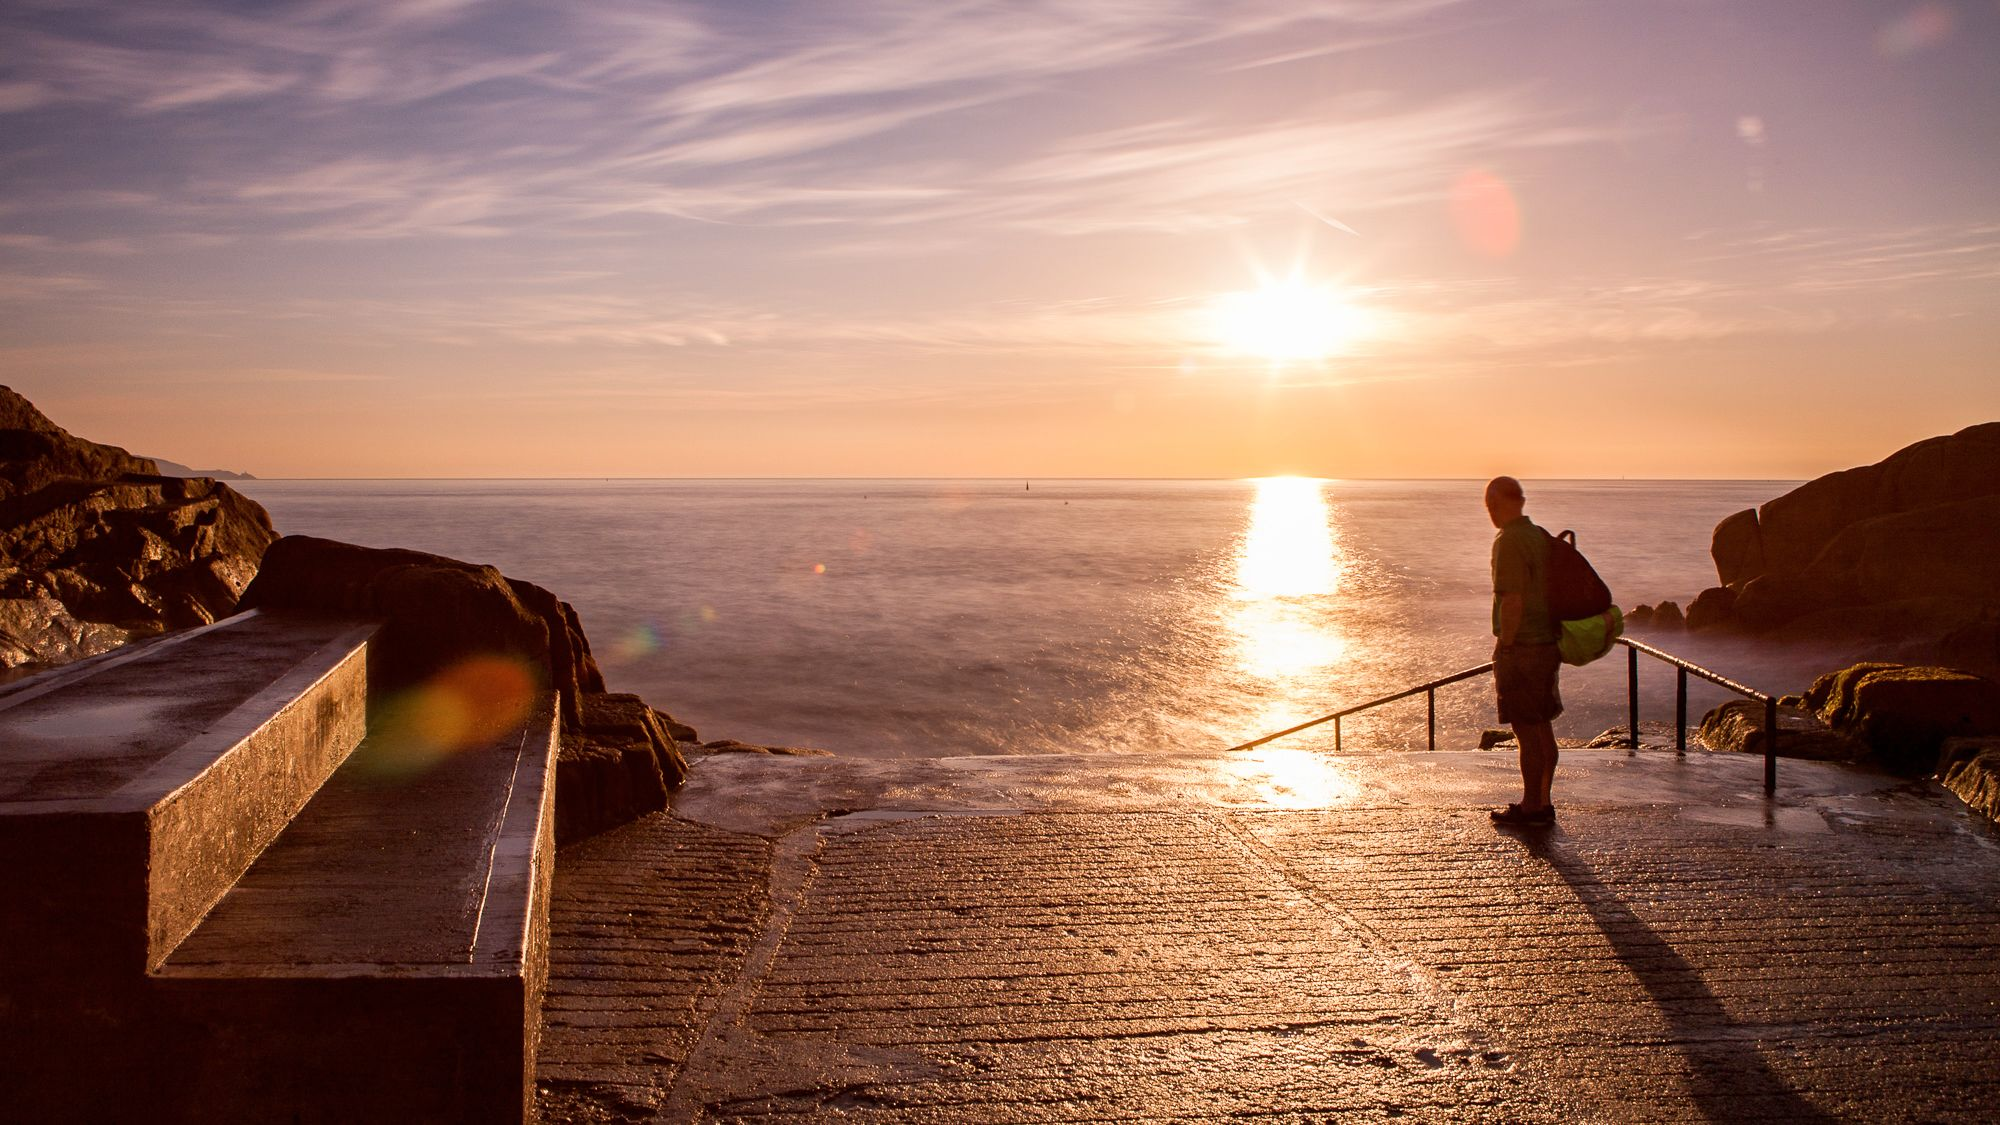 Beautiful sunset view of a tourist near the waters of Dublin on a clear day